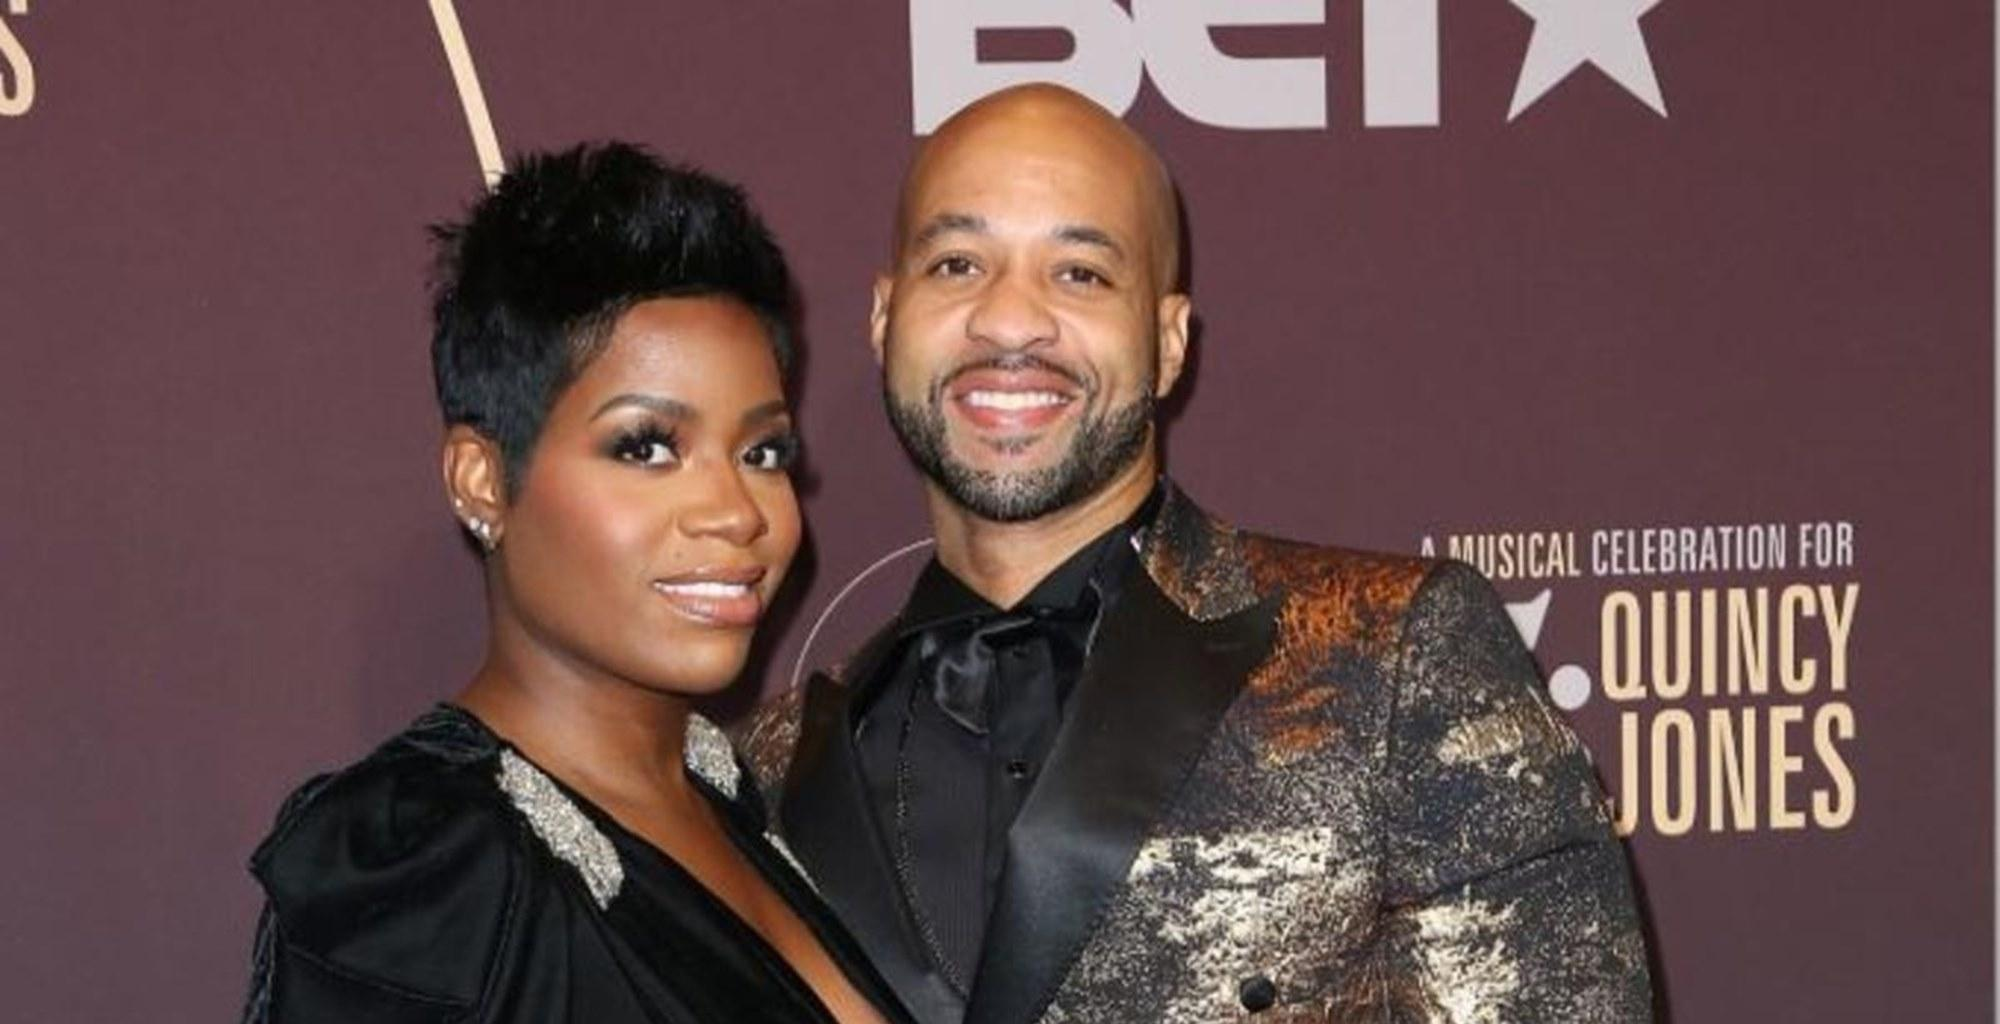 Fantasia Barrino Confirms She Is In The Best Shape Of Her Life In Rainbow Bathing Suit Photos With Husband Kendall Taylor -- Fans Are Predicting A Pregnancy Announcement Soon